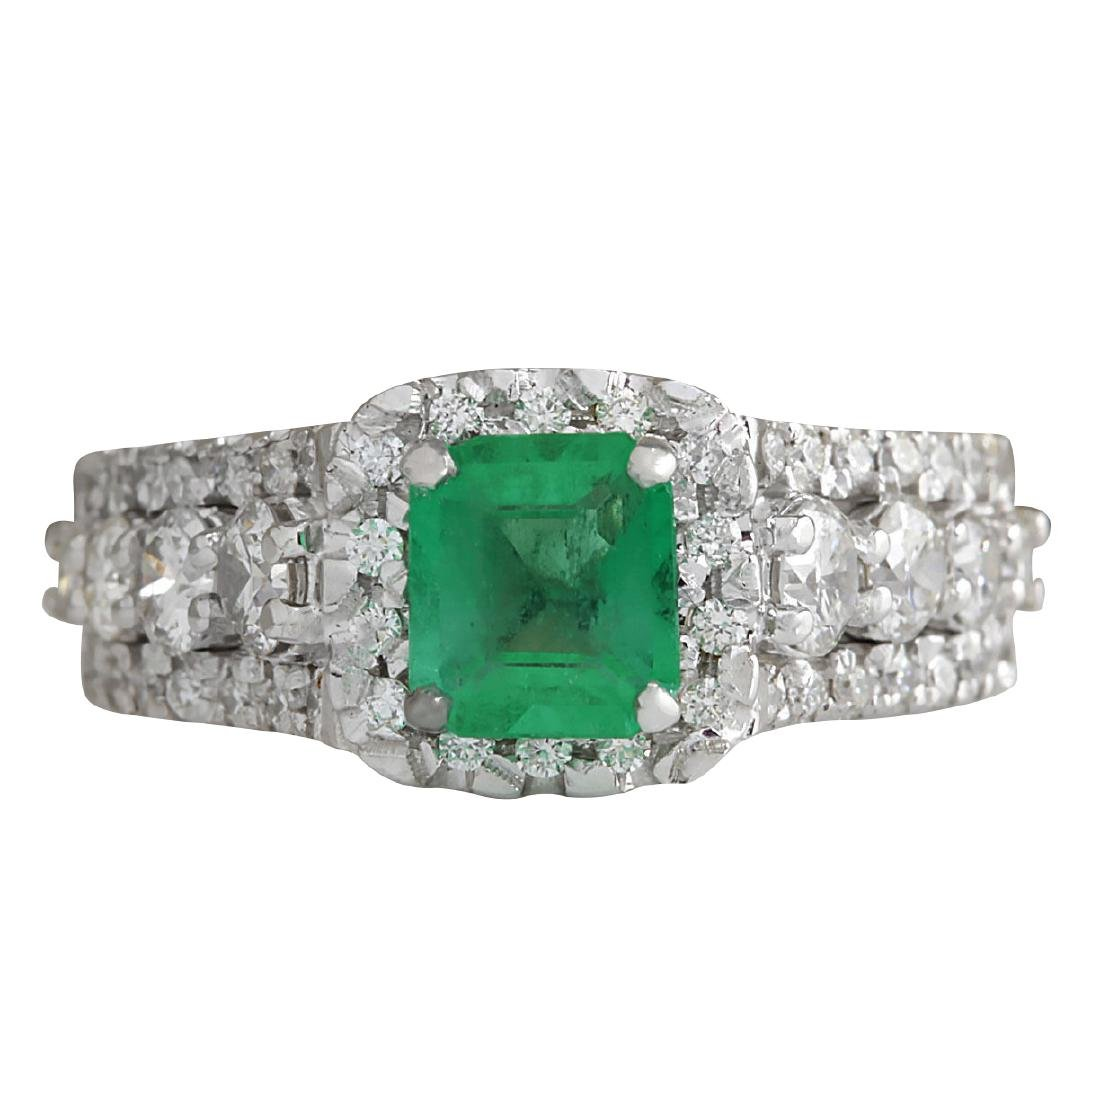 3.30CTW Natural Emerald Diamond Ring 18K Solid White